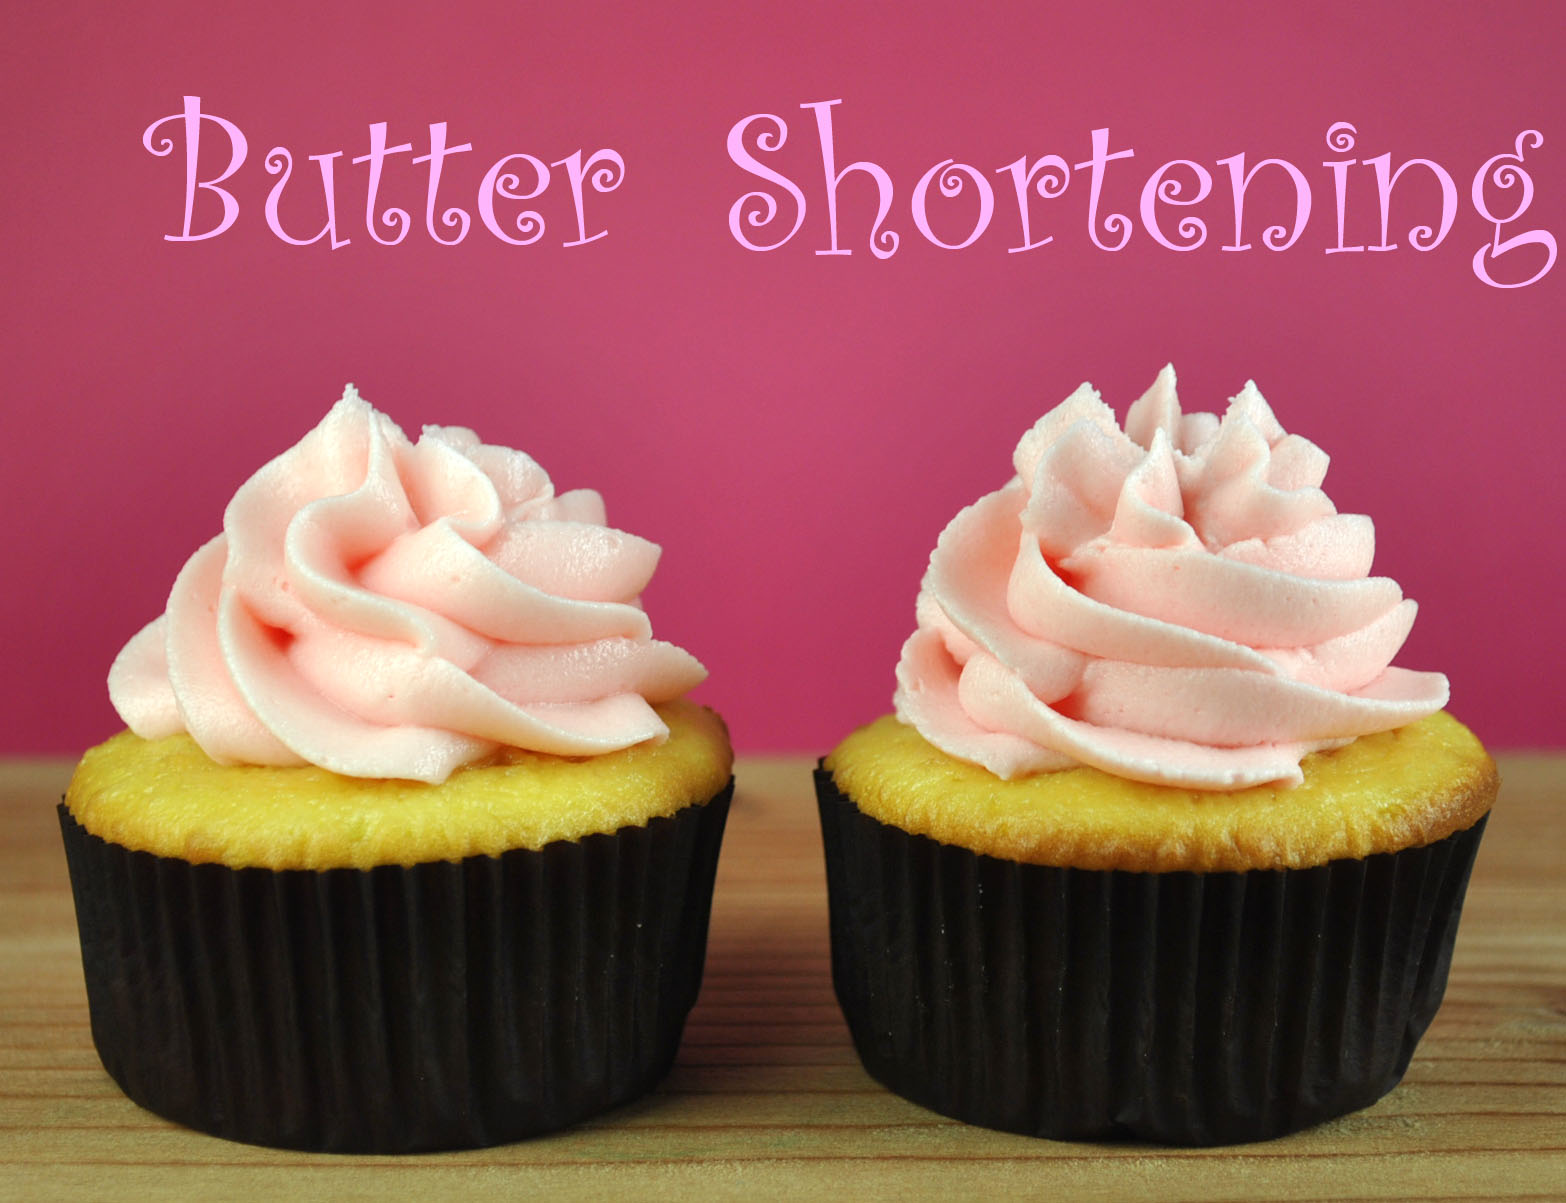 Buttercream Frosting Recipe For Cakes Without Shortening